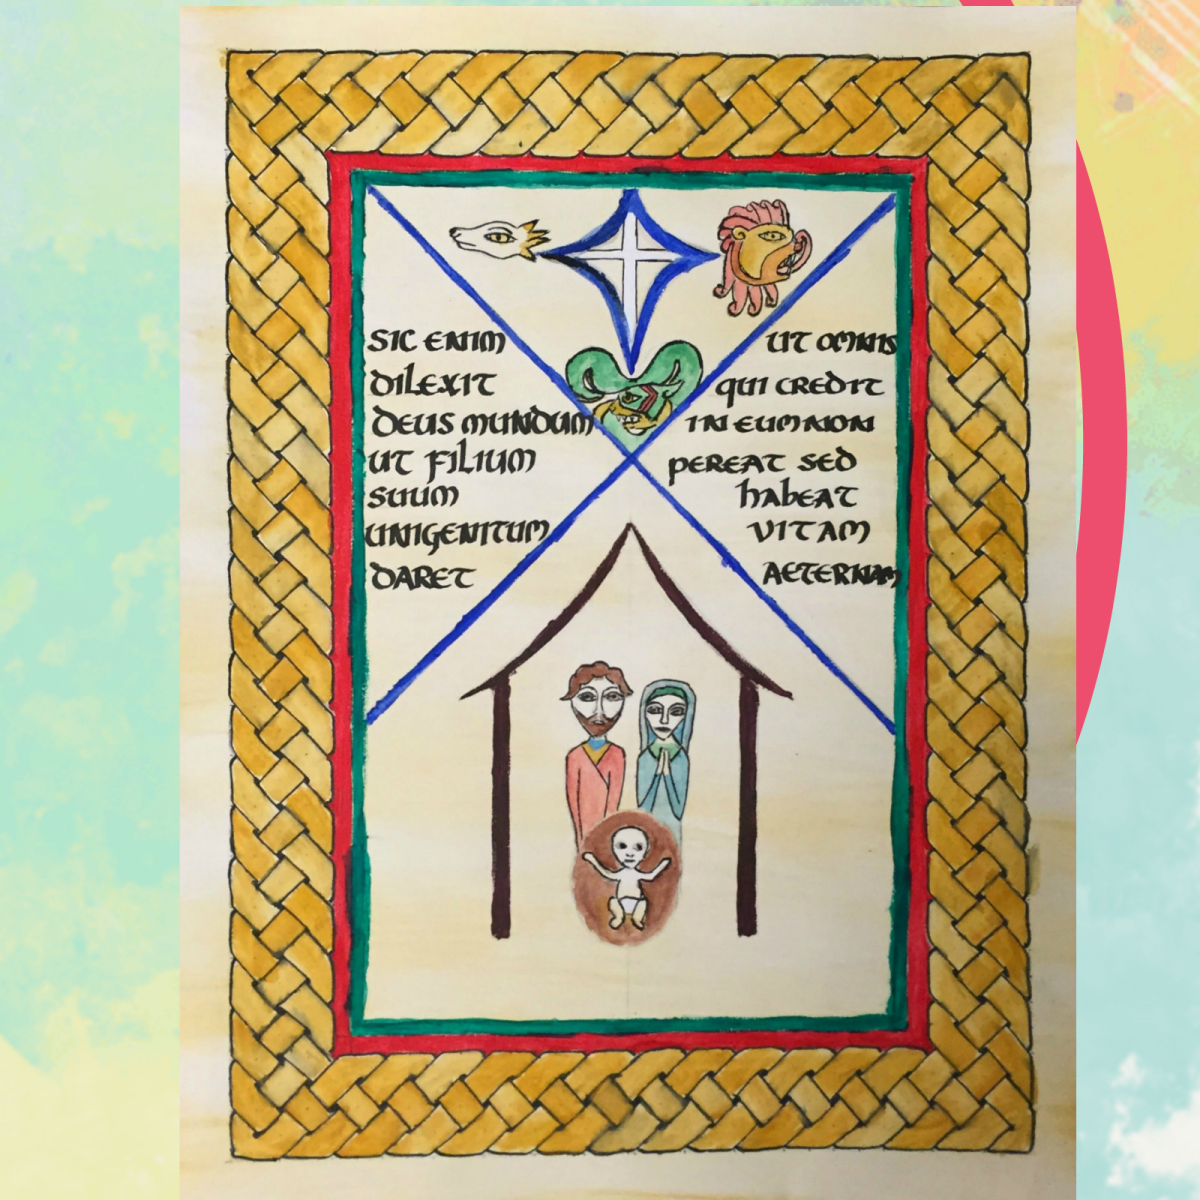 Drawing of illustration approximating calligraphy from Book of Kells